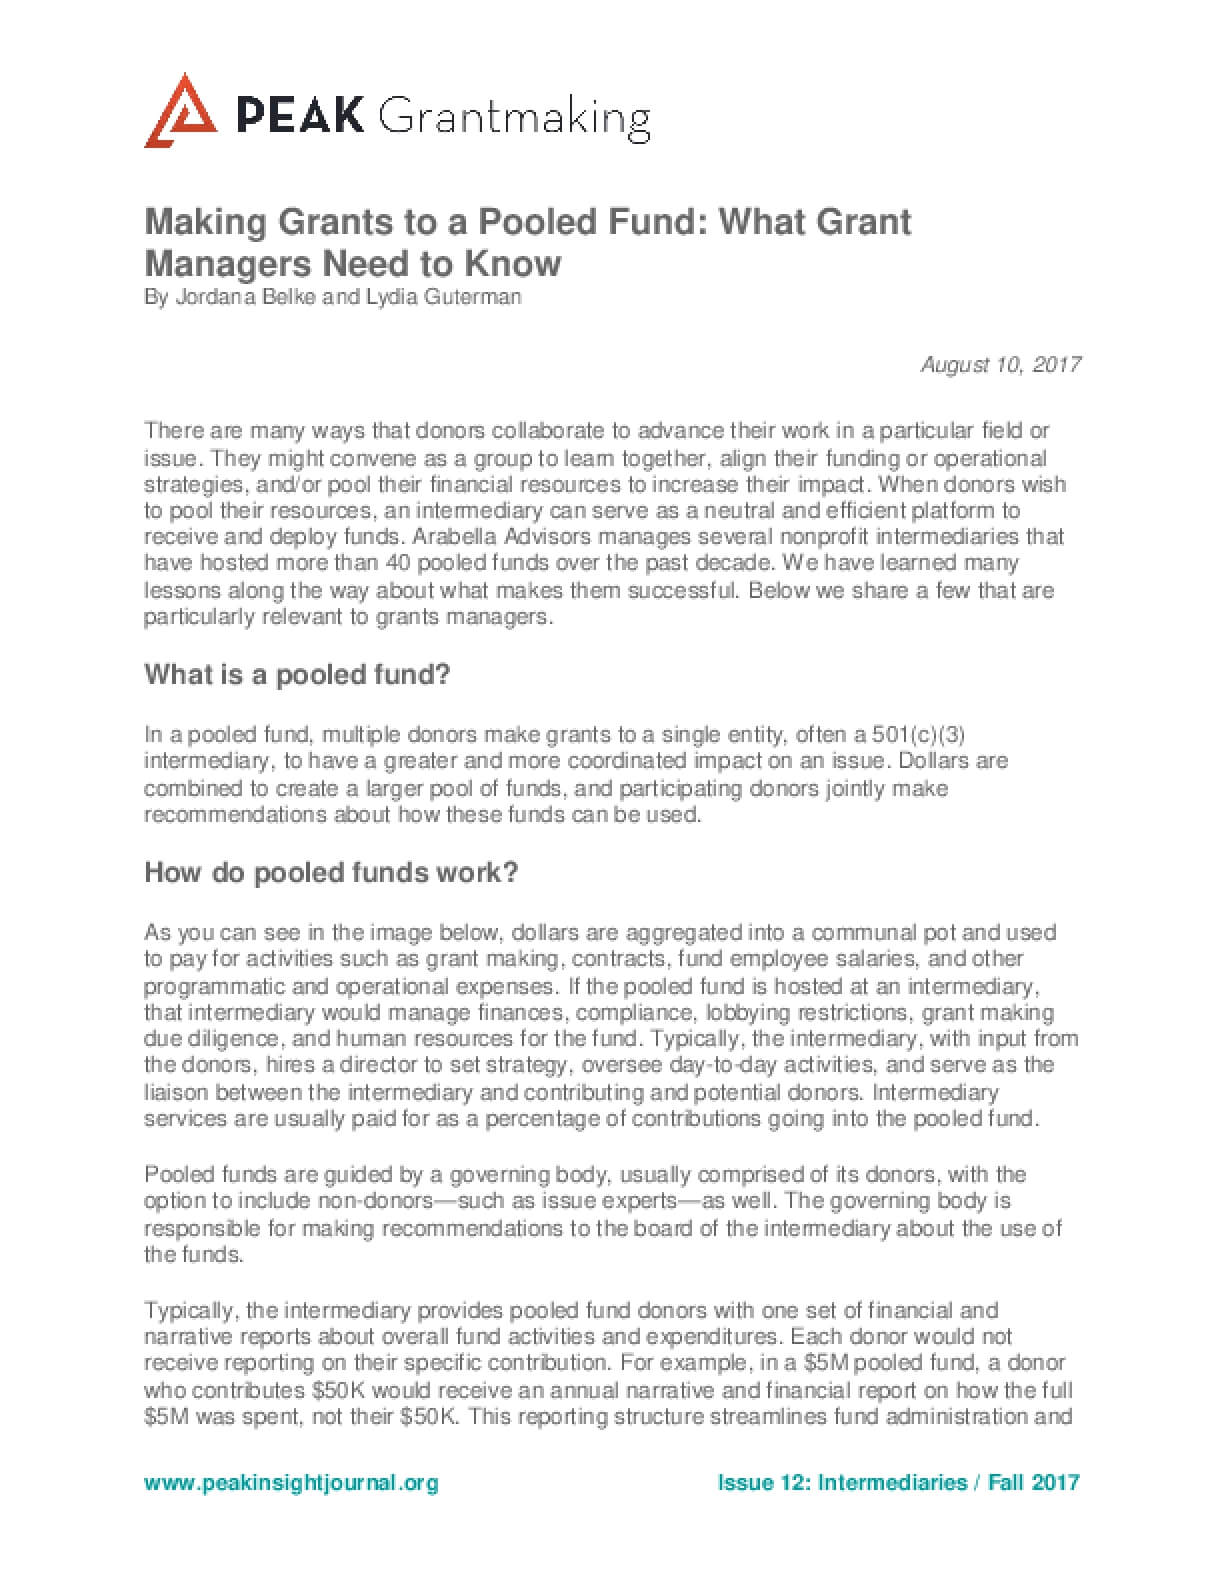 Making Grants to a Pooled Fund: What Grant Managers Need to Know